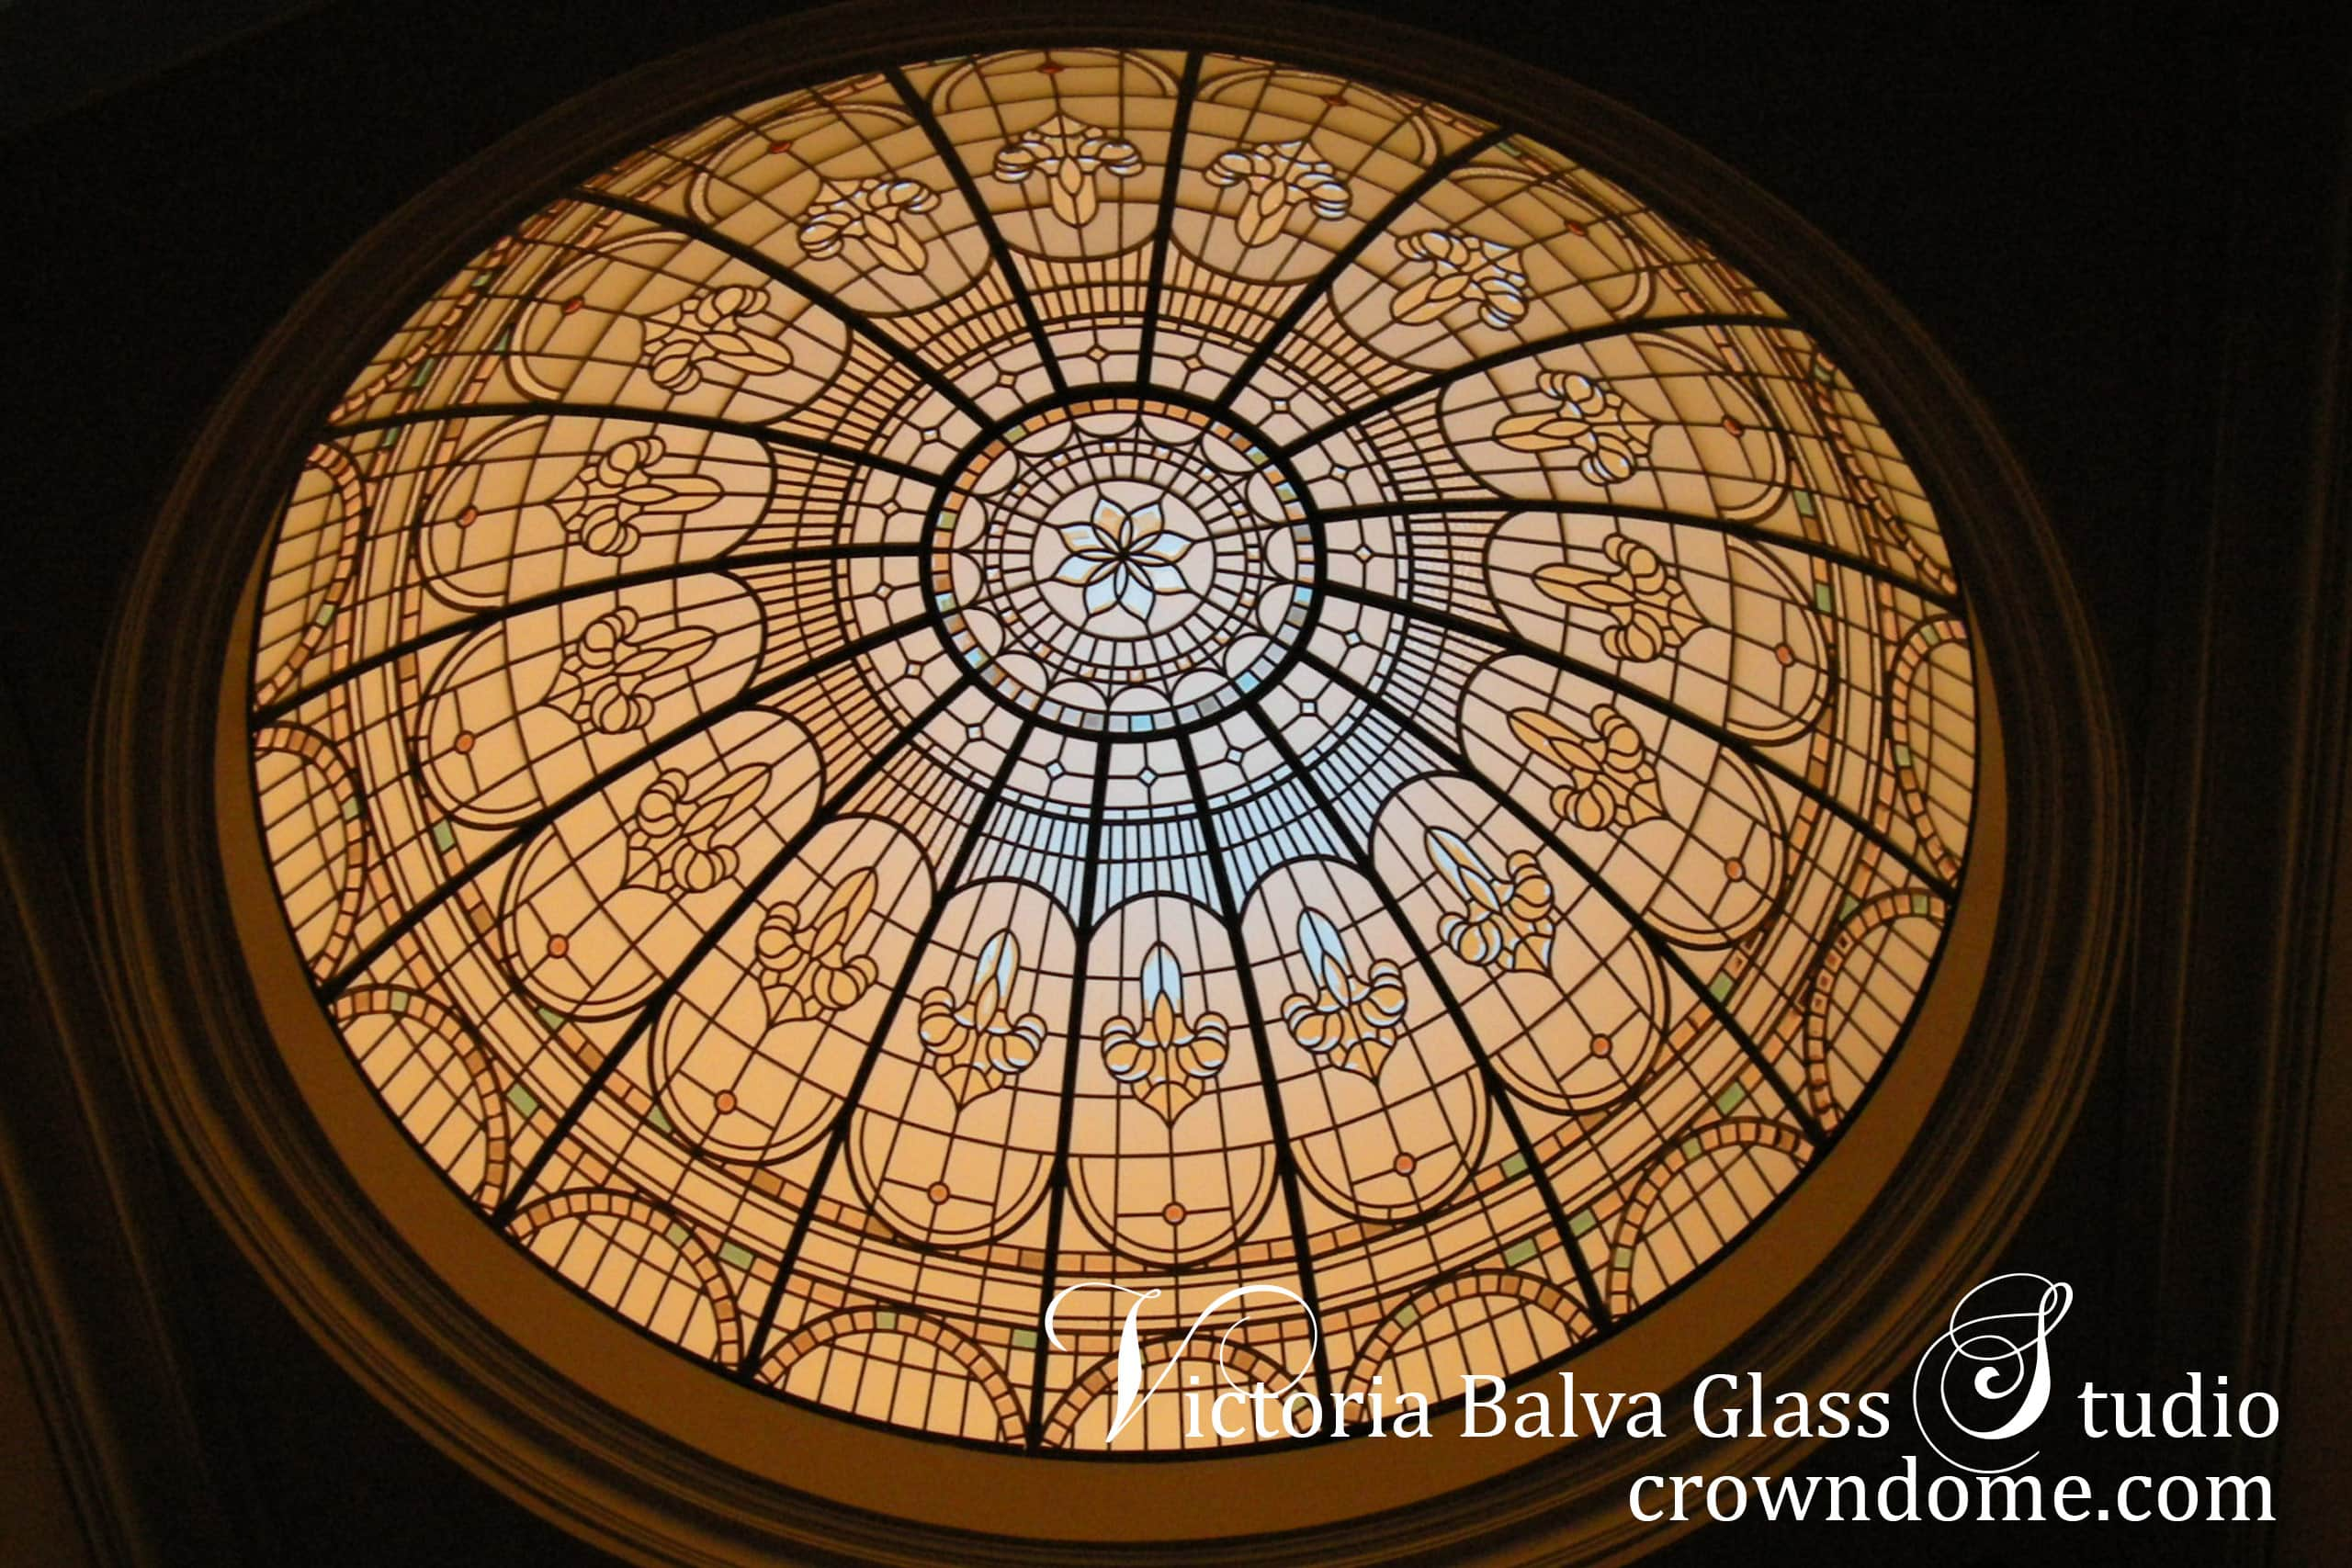 Stained glass dome with artificial light in the evening